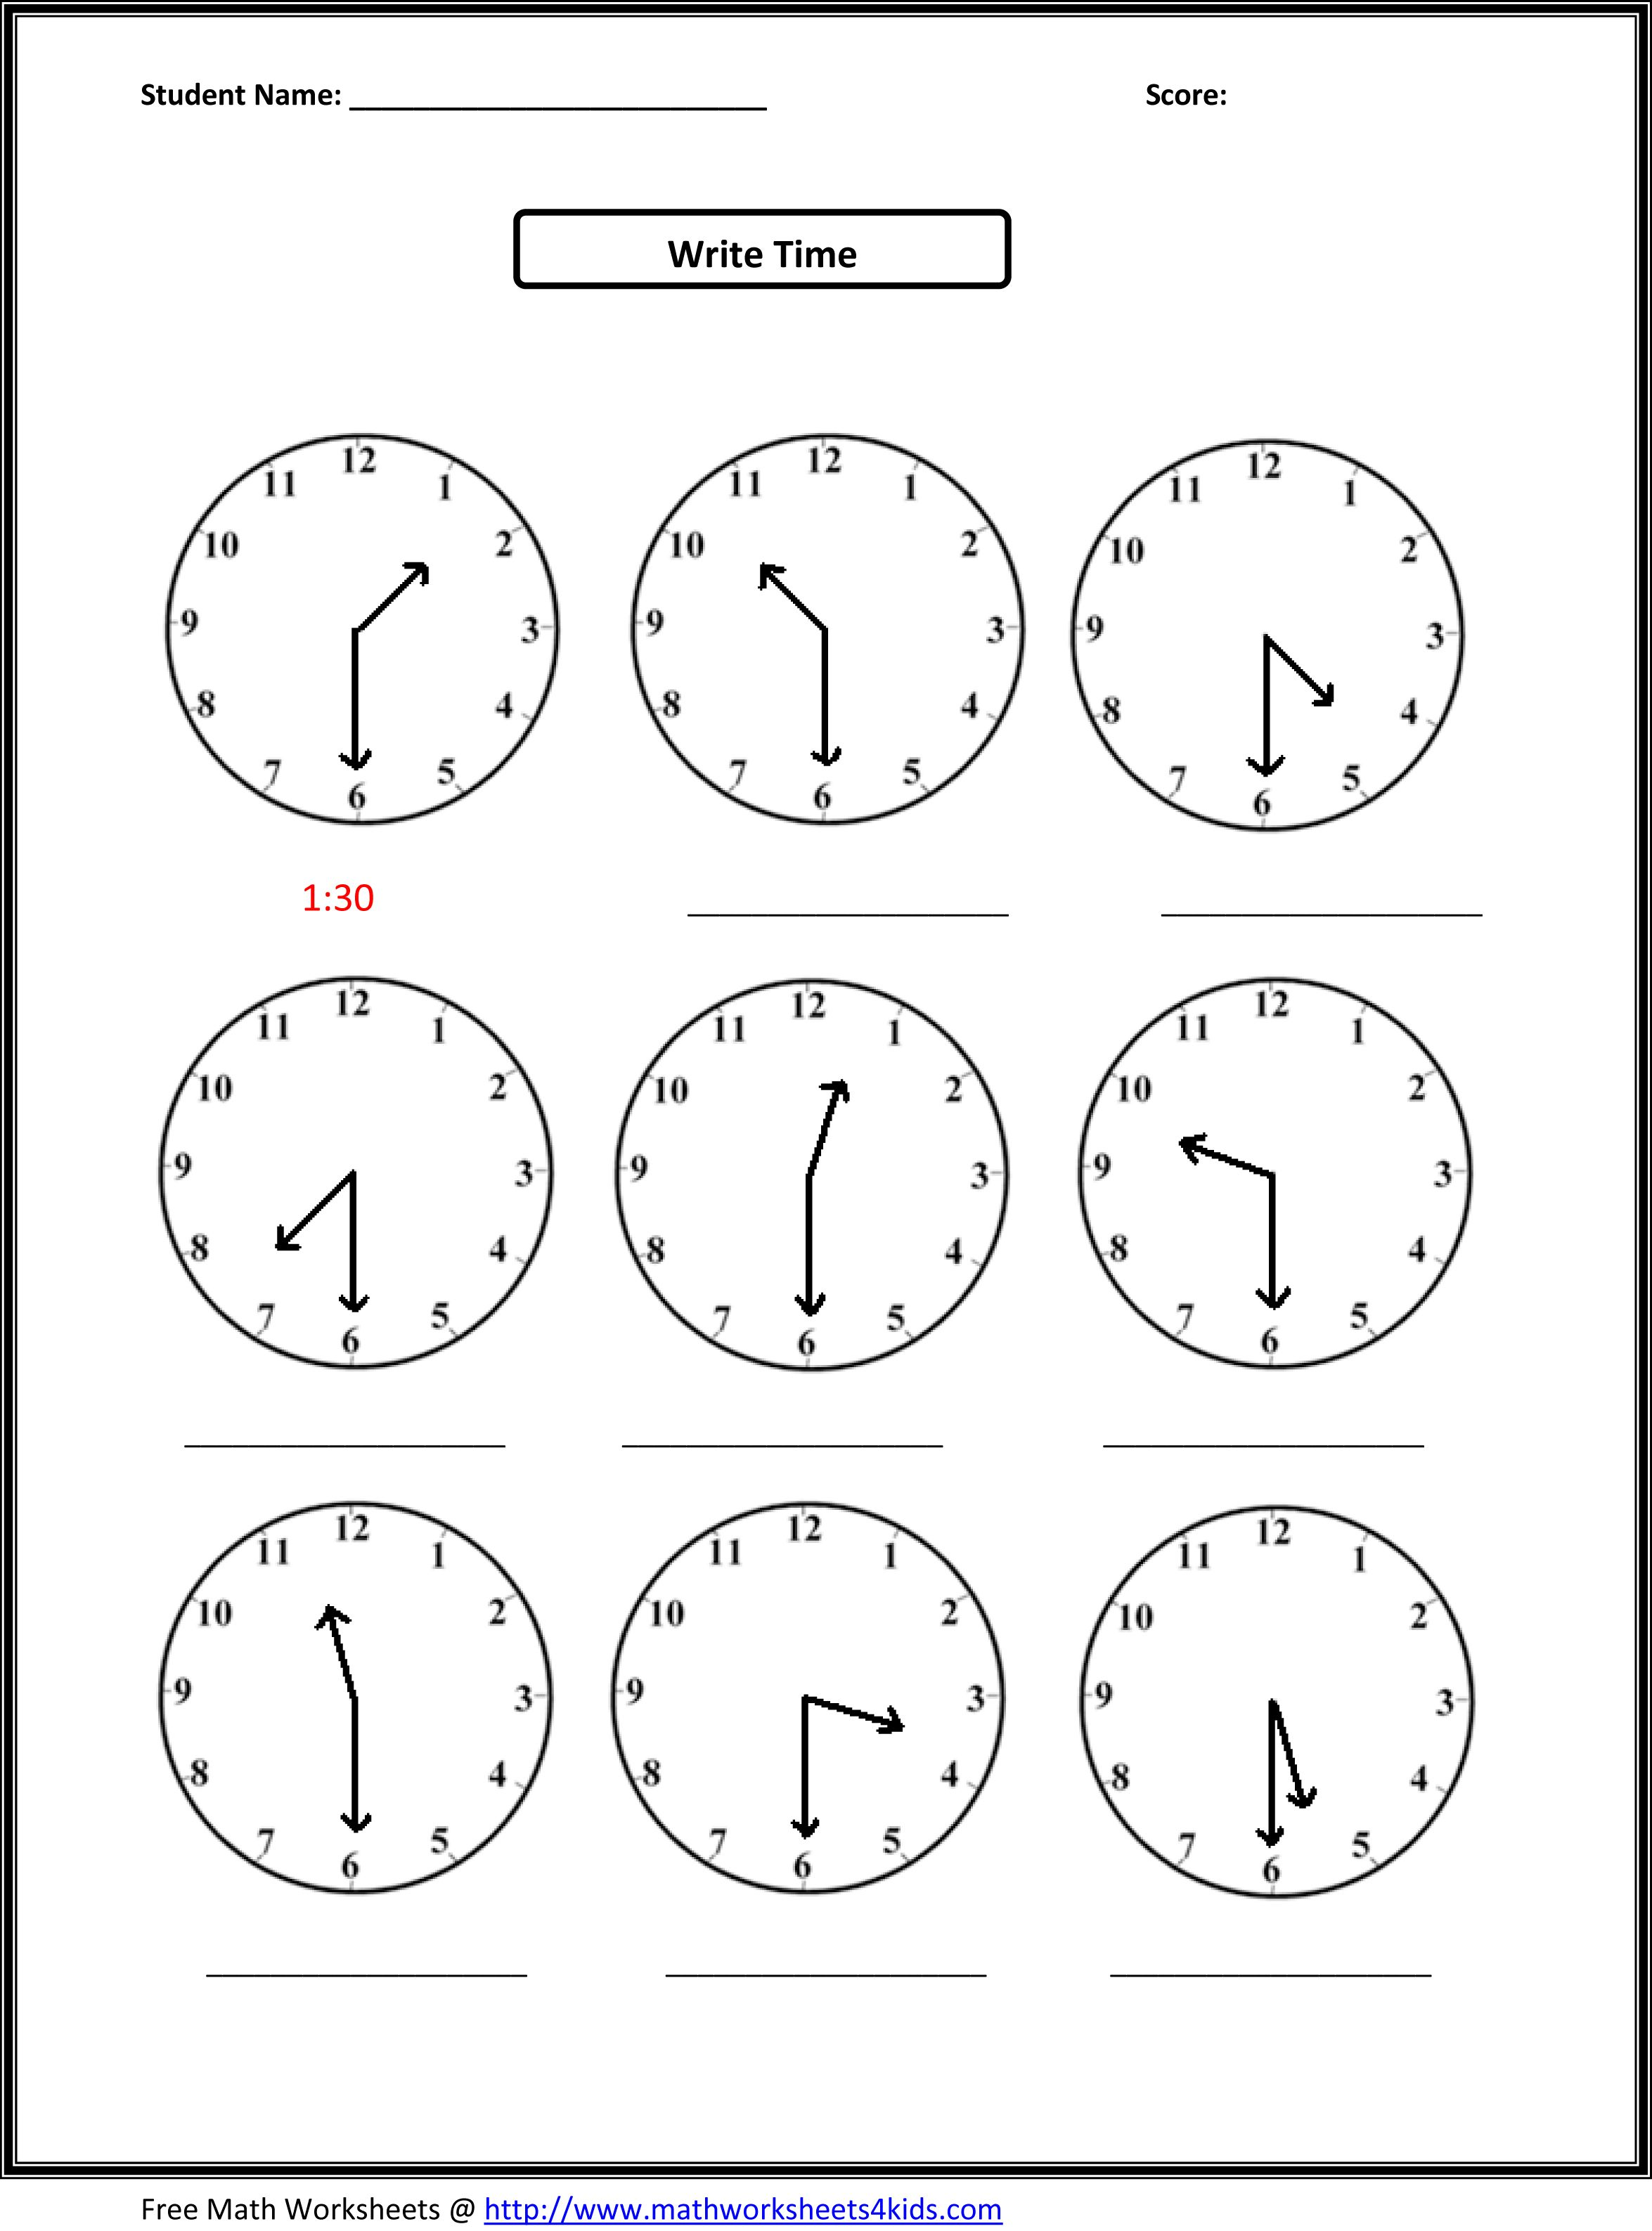 Proatmealus  Picturesque Worksheet On Time For Grade   Reocurent With Interesting Free Printable Telling Time Worksheets Nd Grade  Reocurent With Extraordinary Free Nutrition Worksheets Also Drafting Worksheets In Addition Possessive Noun Worksheets Rd Grade And Art Class Worksheets As Well As Long Division With Remainders Worksheets Th Grade Additionally Author Point Of View Worksheets From Reocurentcom With Proatmealus  Interesting Worksheet On Time For Grade   Reocurent With Extraordinary Free Printable Telling Time Worksheets Nd Grade  Reocurent And Picturesque Free Nutrition Worksheets Also Drafting Worksheets In Addition Possessive Noun Worksheets Rd Grade From Reocurentcom